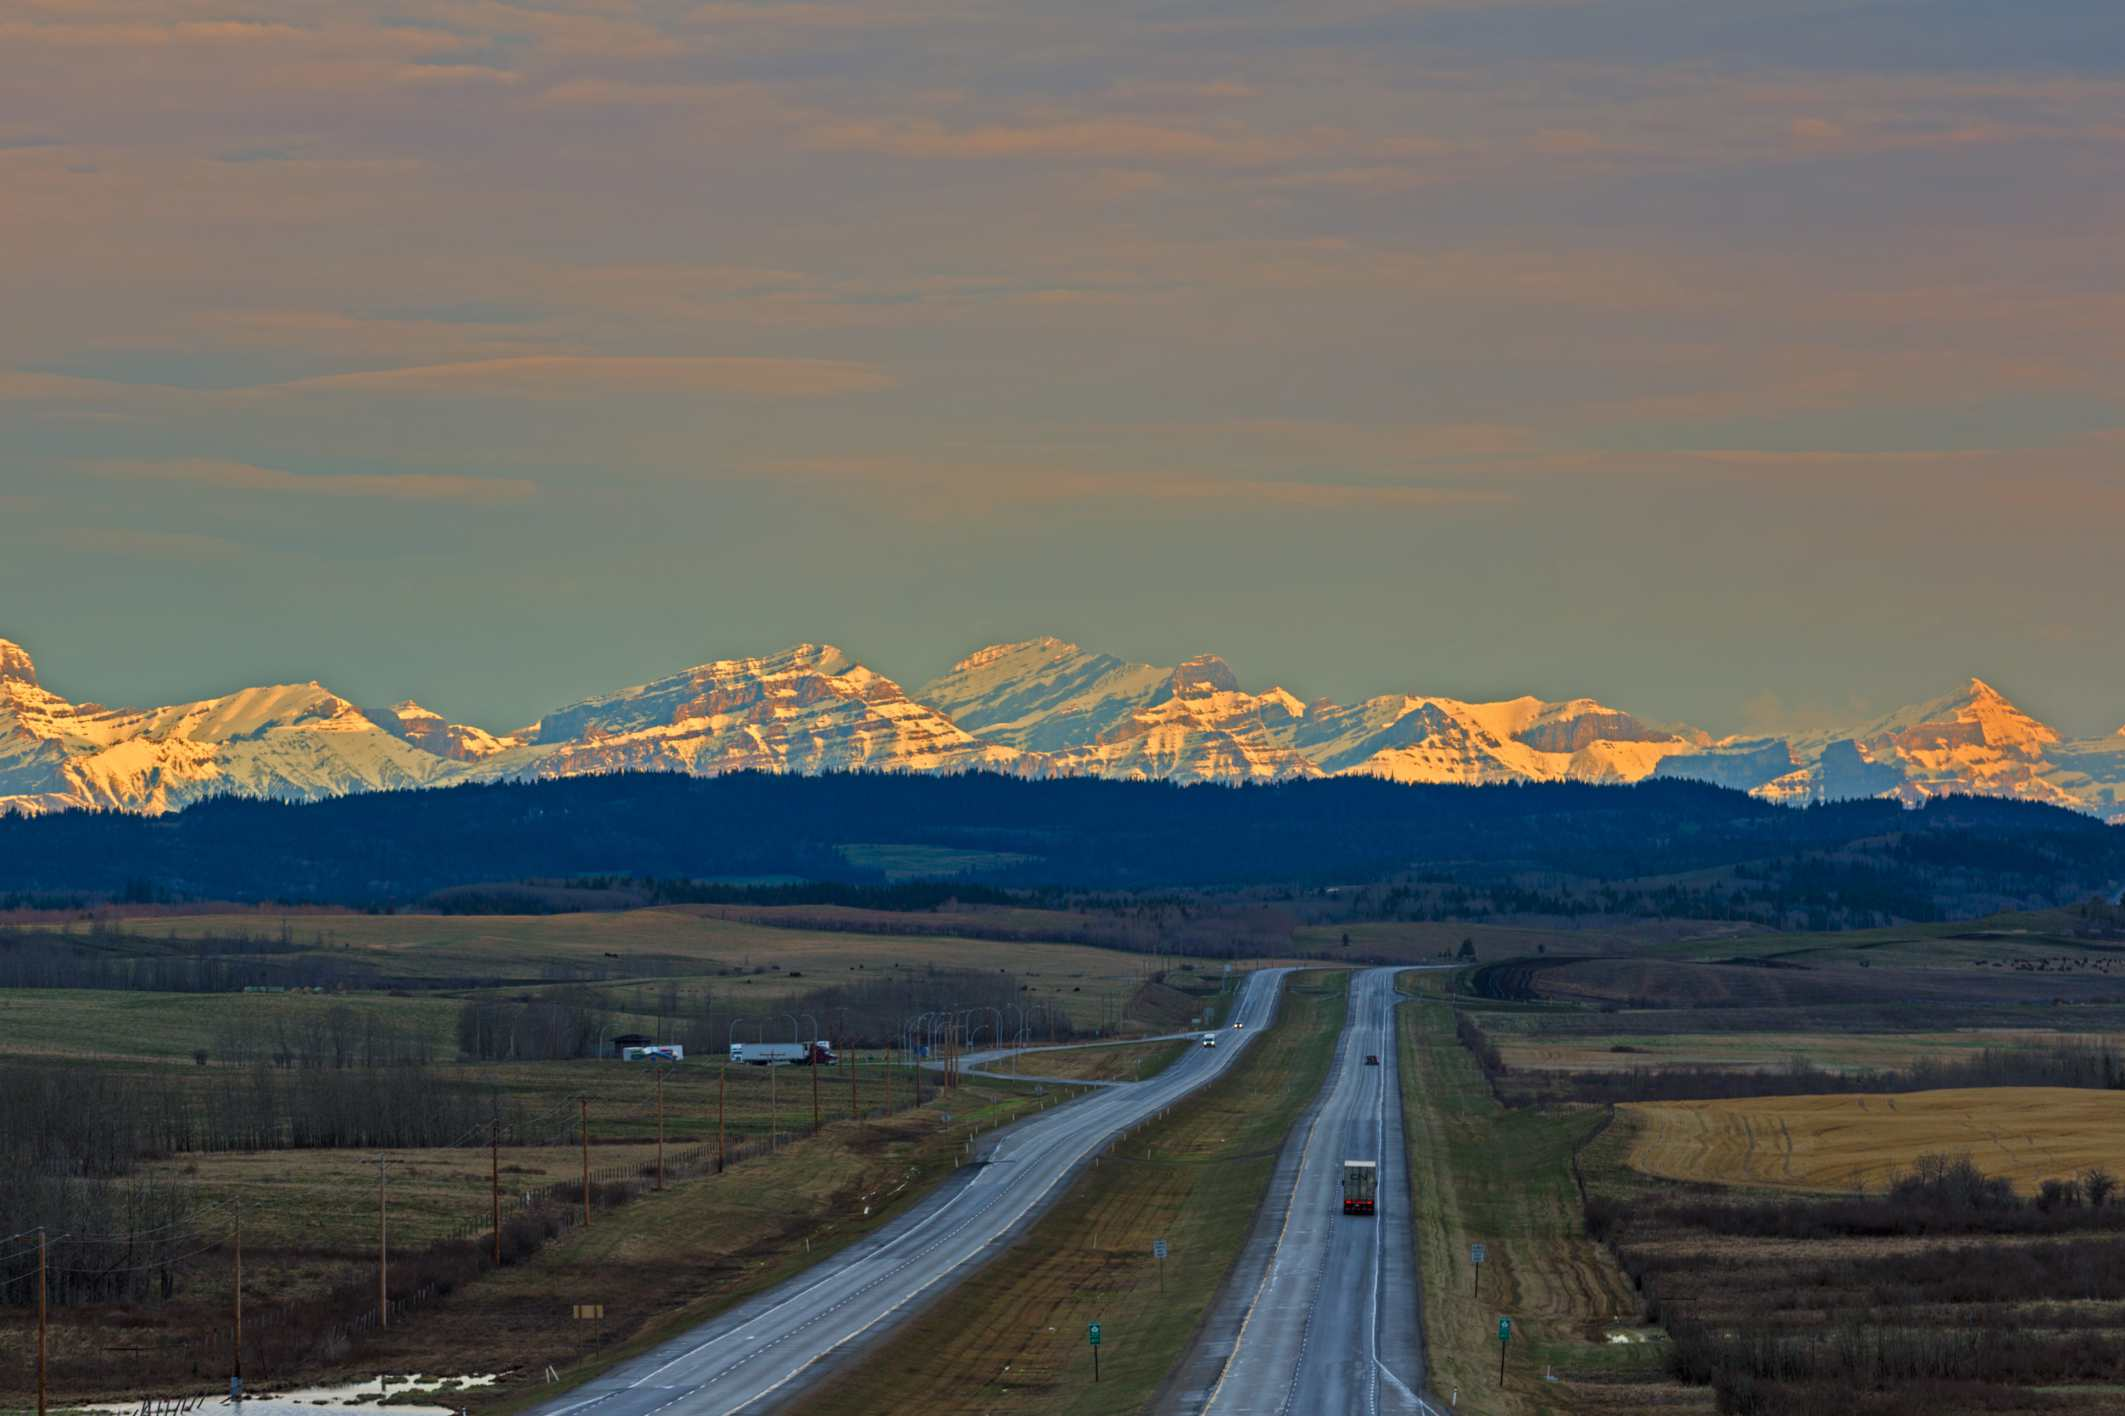 A view of the Trans-Canada Highway in Alberta, British Columbia